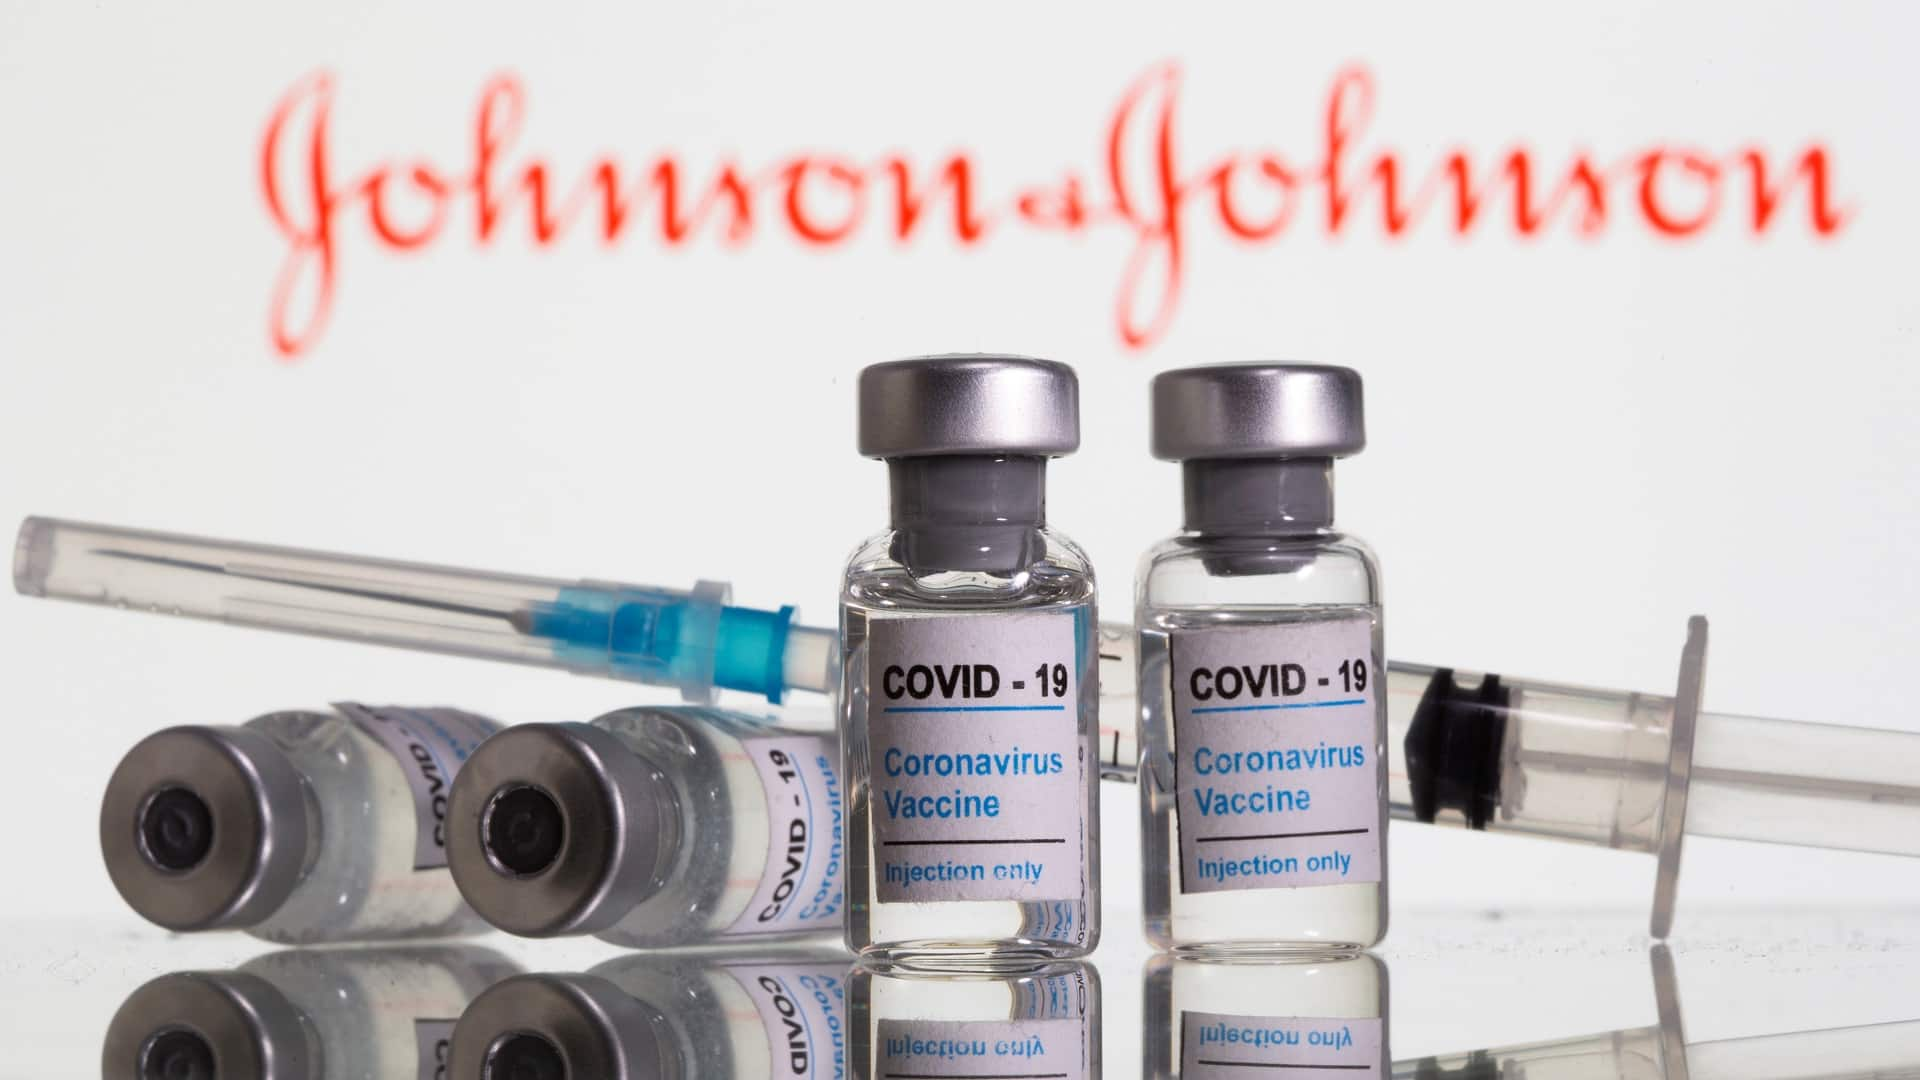 Canadians shouldn't shop around for vaccines with higher efficacy rates, experts say